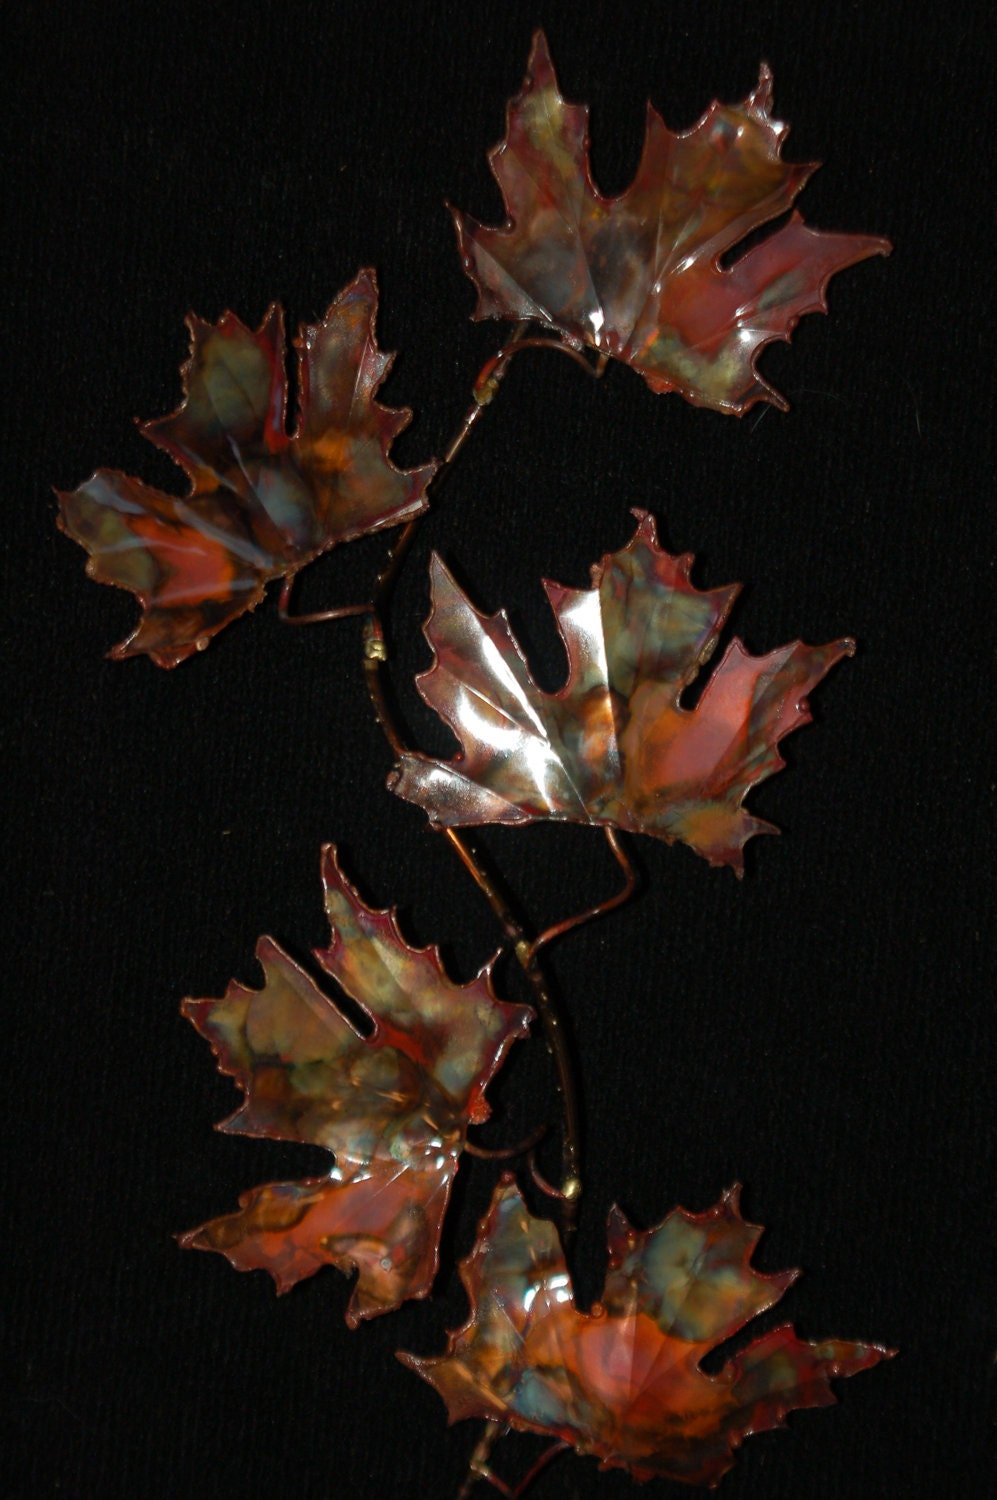 Jun 08,  · On the 19 of January I challenged myself to make a metal leaf a day for a year. Currently, I am up to leaves. These are but a few to show the evolution of my leaf project and how the use of